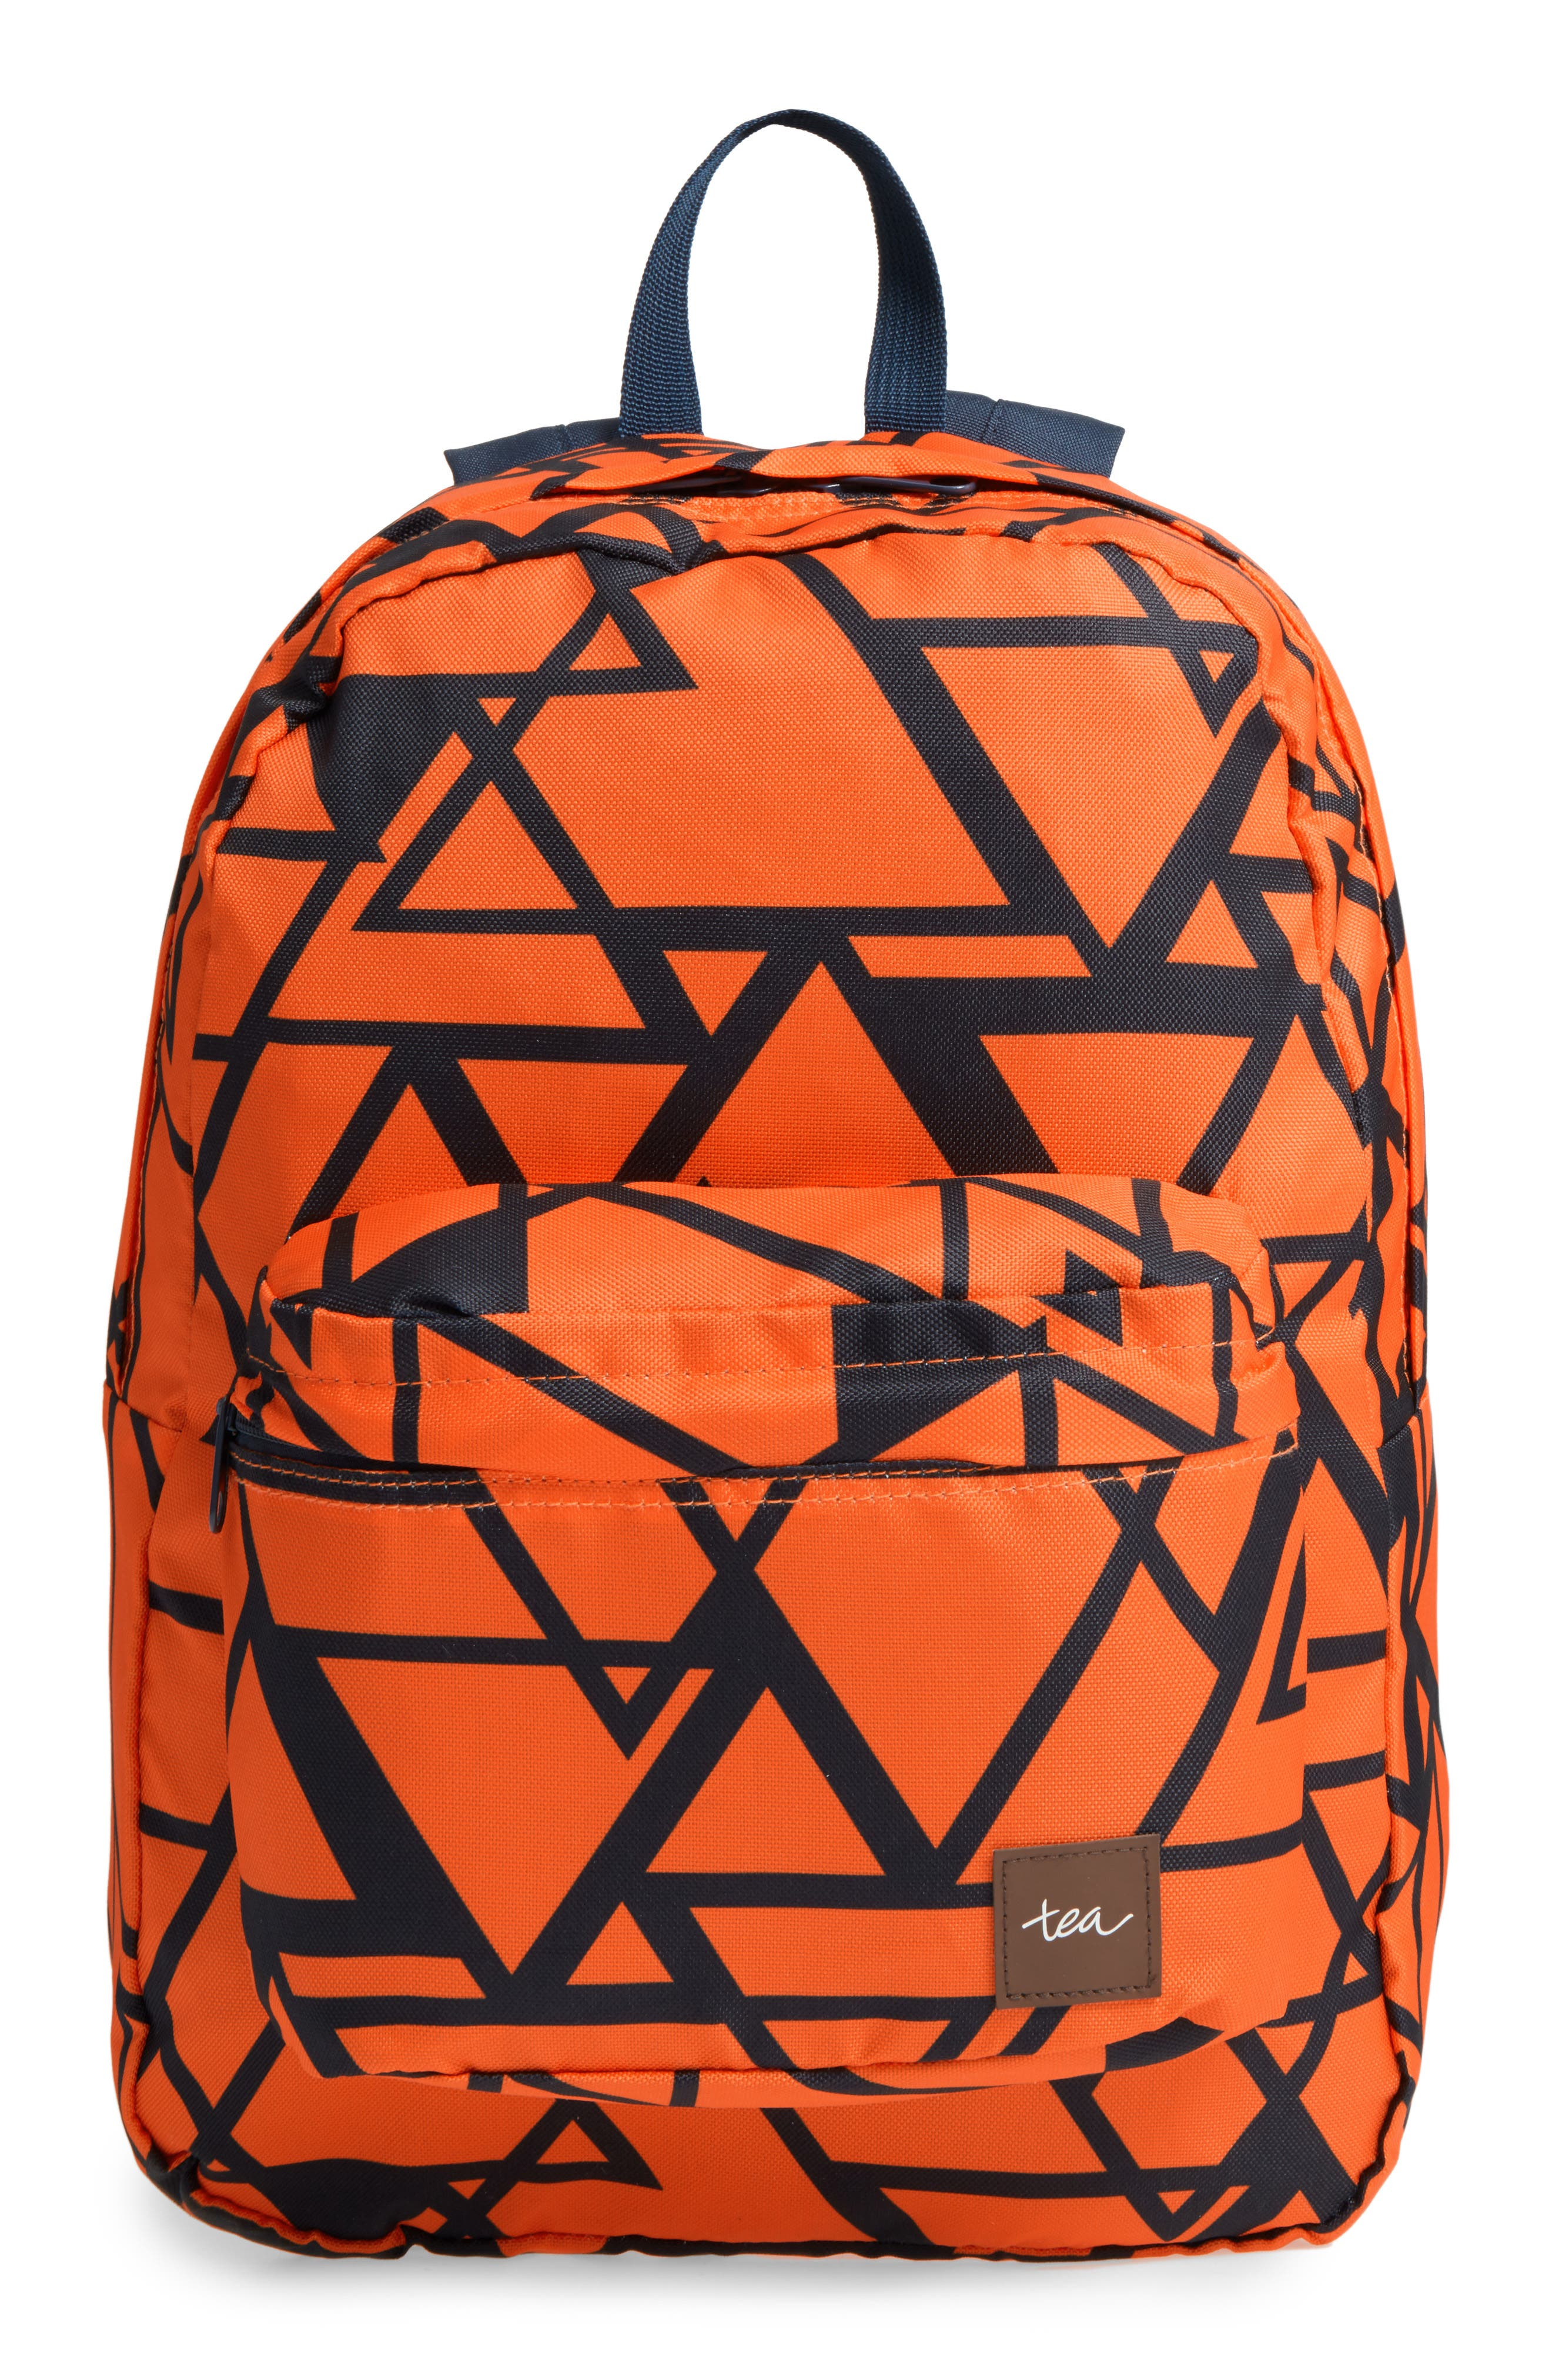 Scots Triangle Backpack,                             Main thumbnail 1, color,                             804